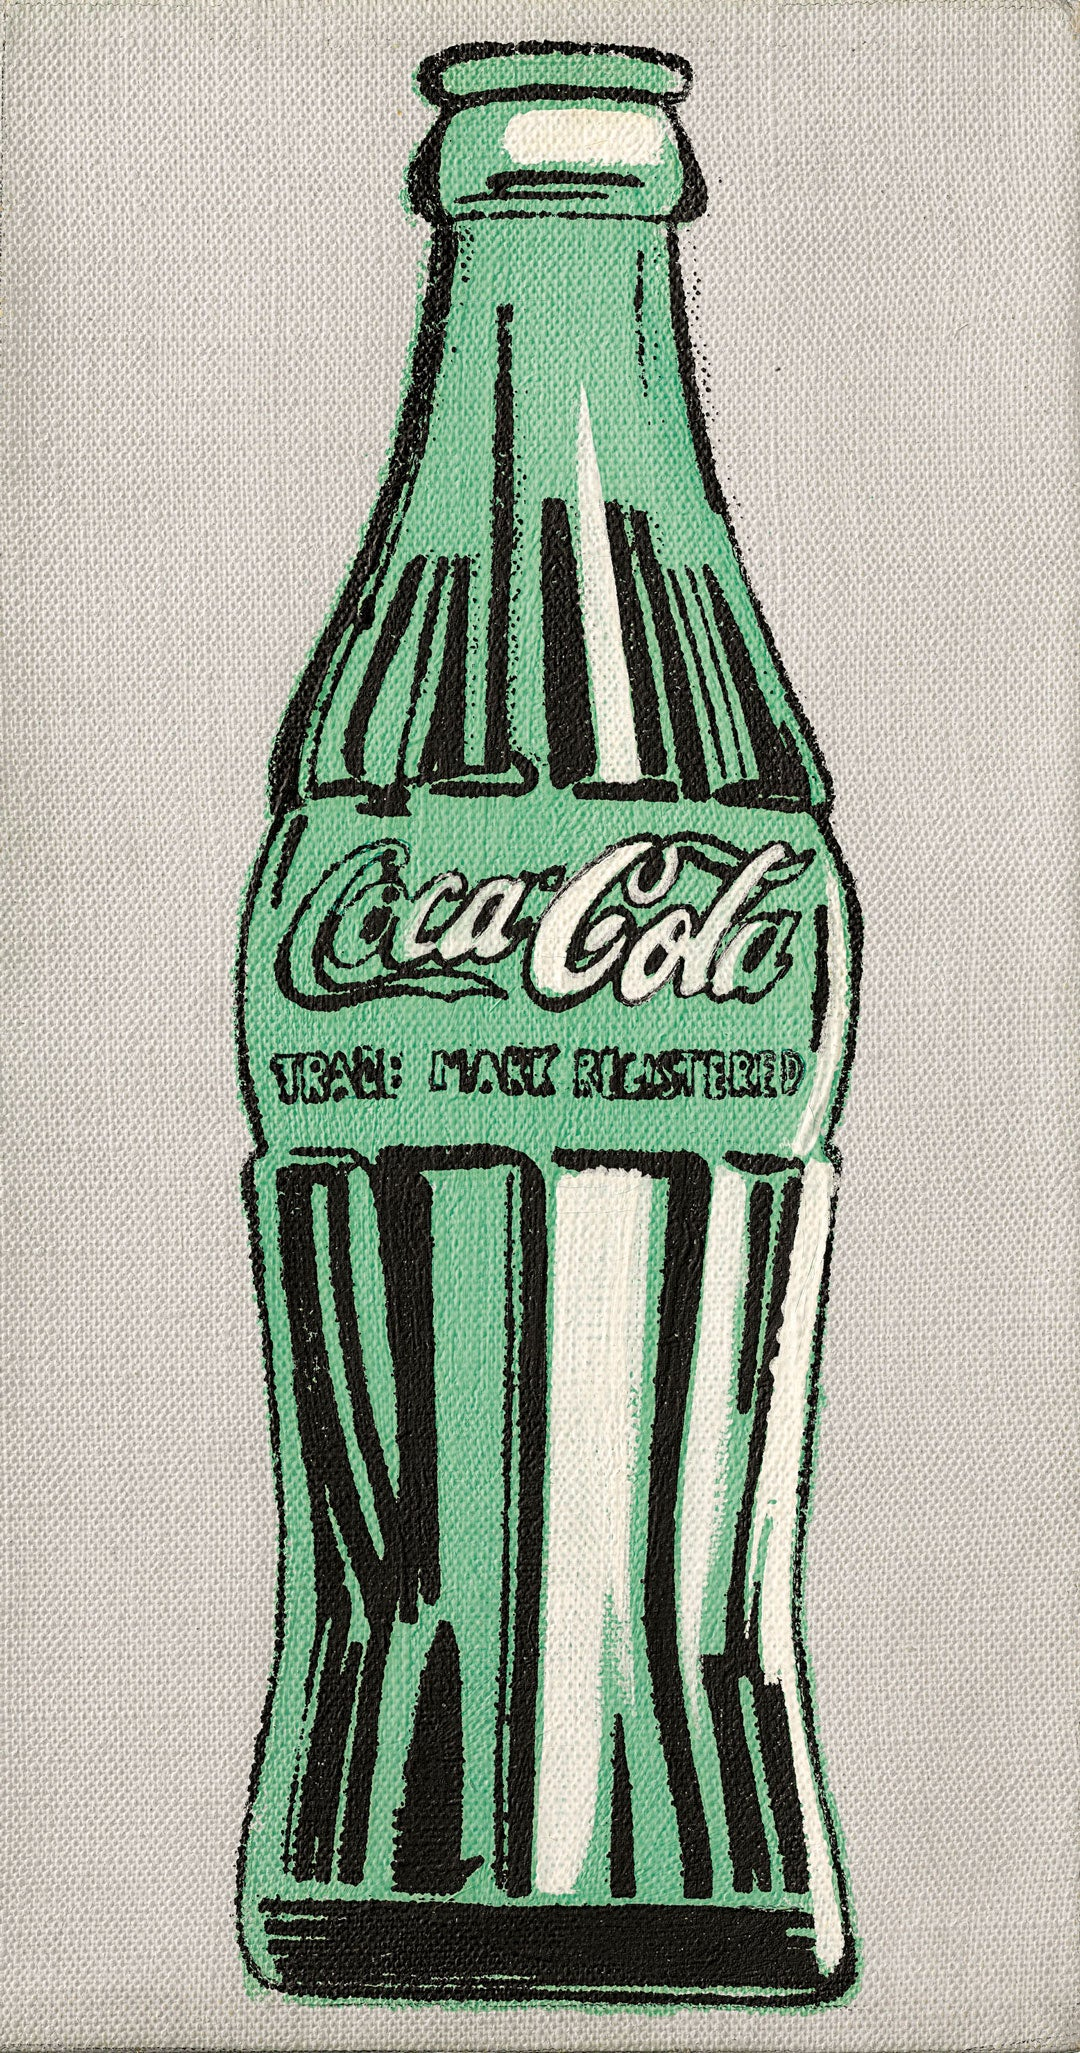 Oil painting of a green Coca Cola bottle